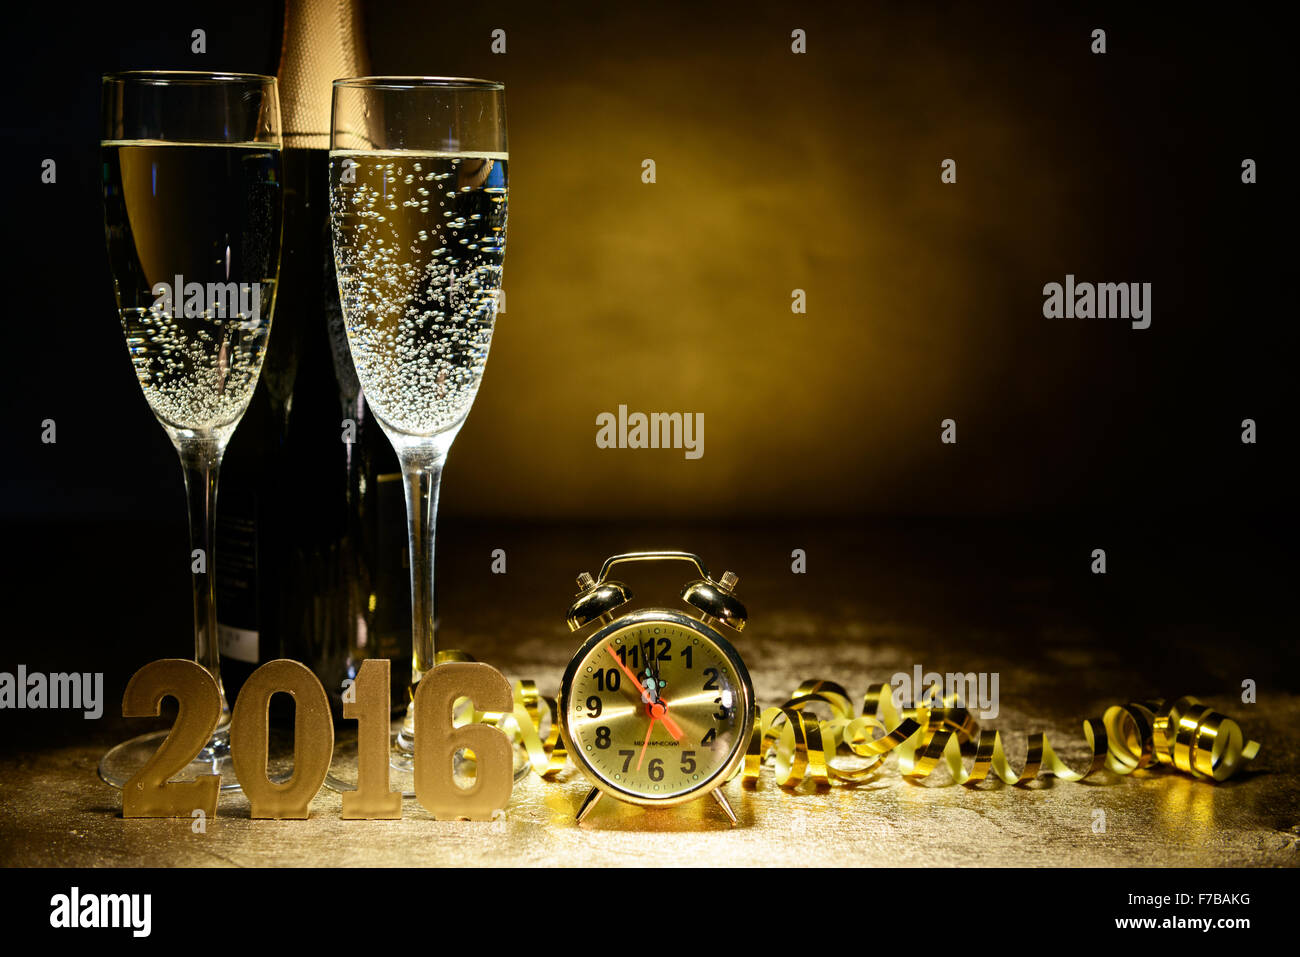 two glasses of champagne on a gold background christmas and new year theme